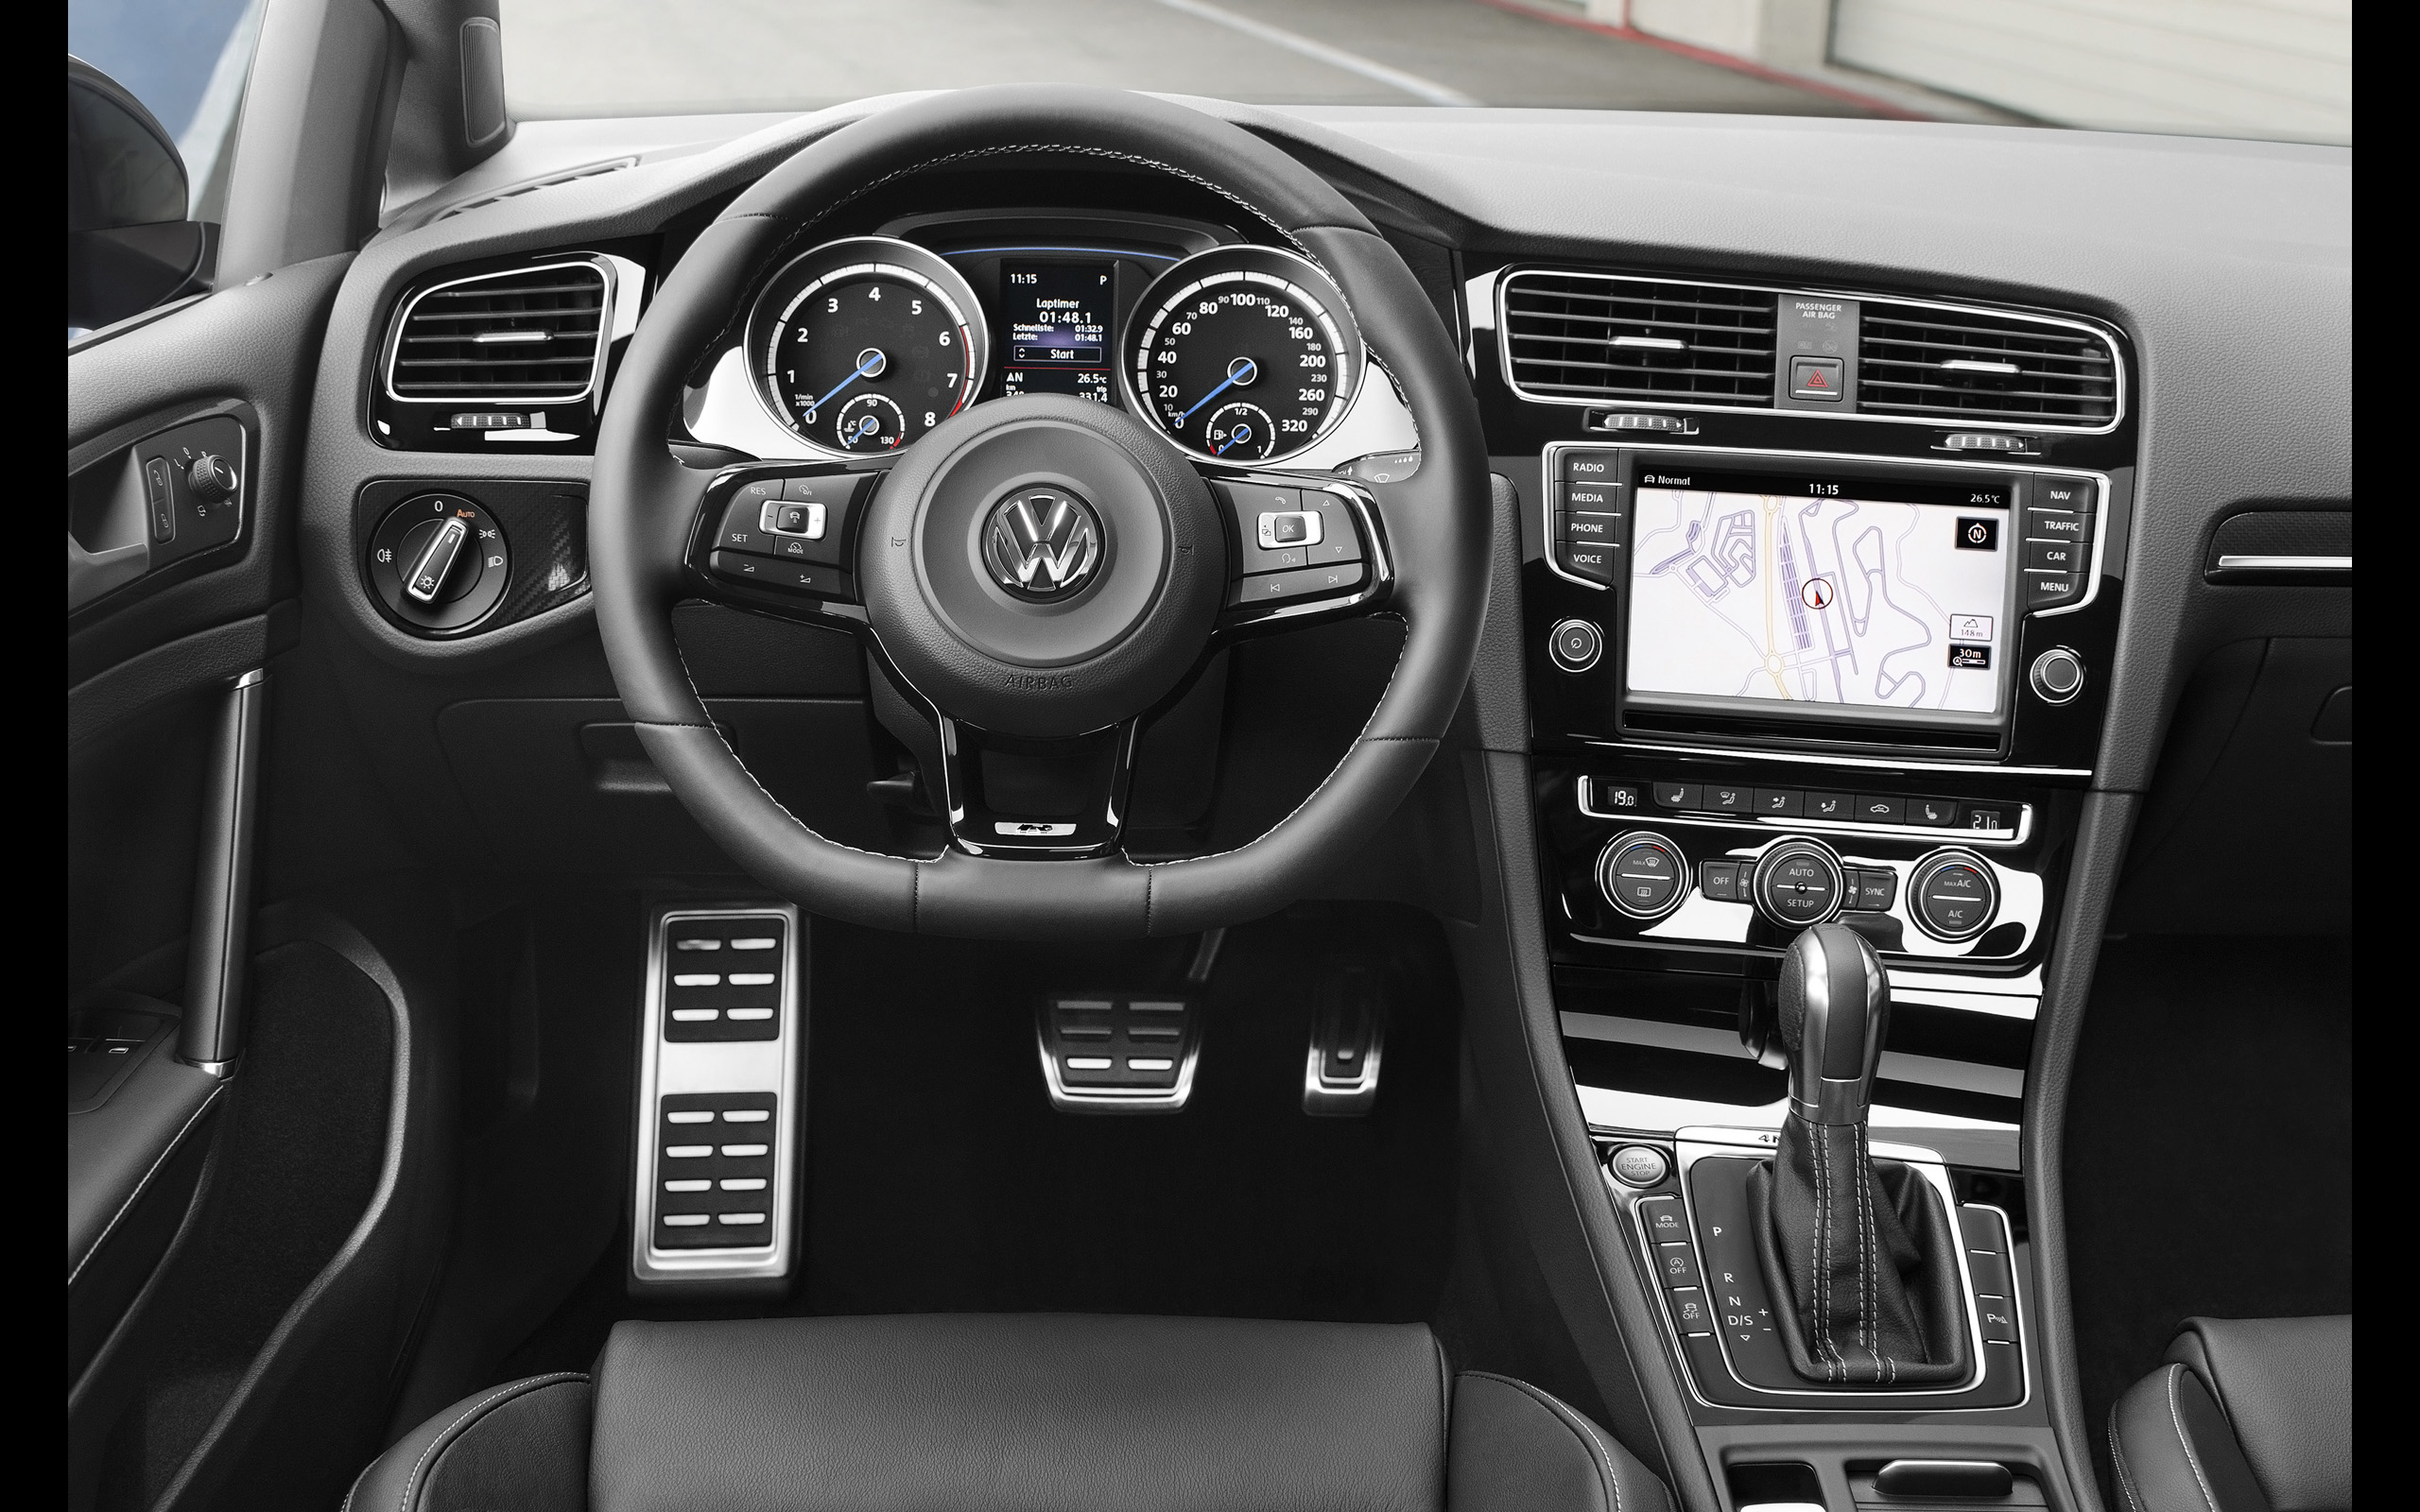 2014 volkswagen golf r golf r interior h wallpaper. Black Bedroom Furniture Sets. Home Design Ideas